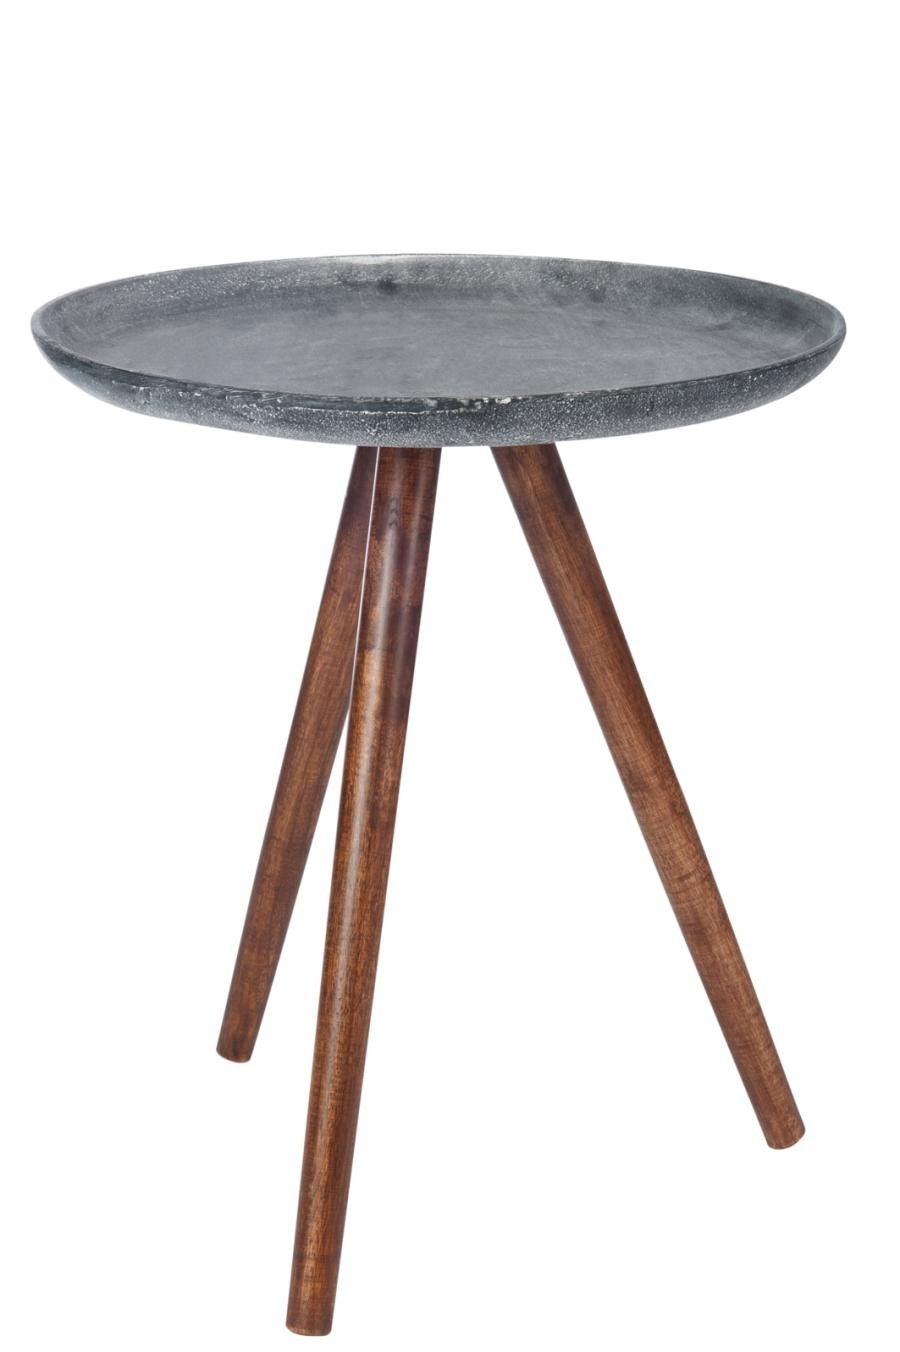 table dappoint ronde mtal et bois anthracite 45x45x50cm j line by - Table D Appoint Ronde